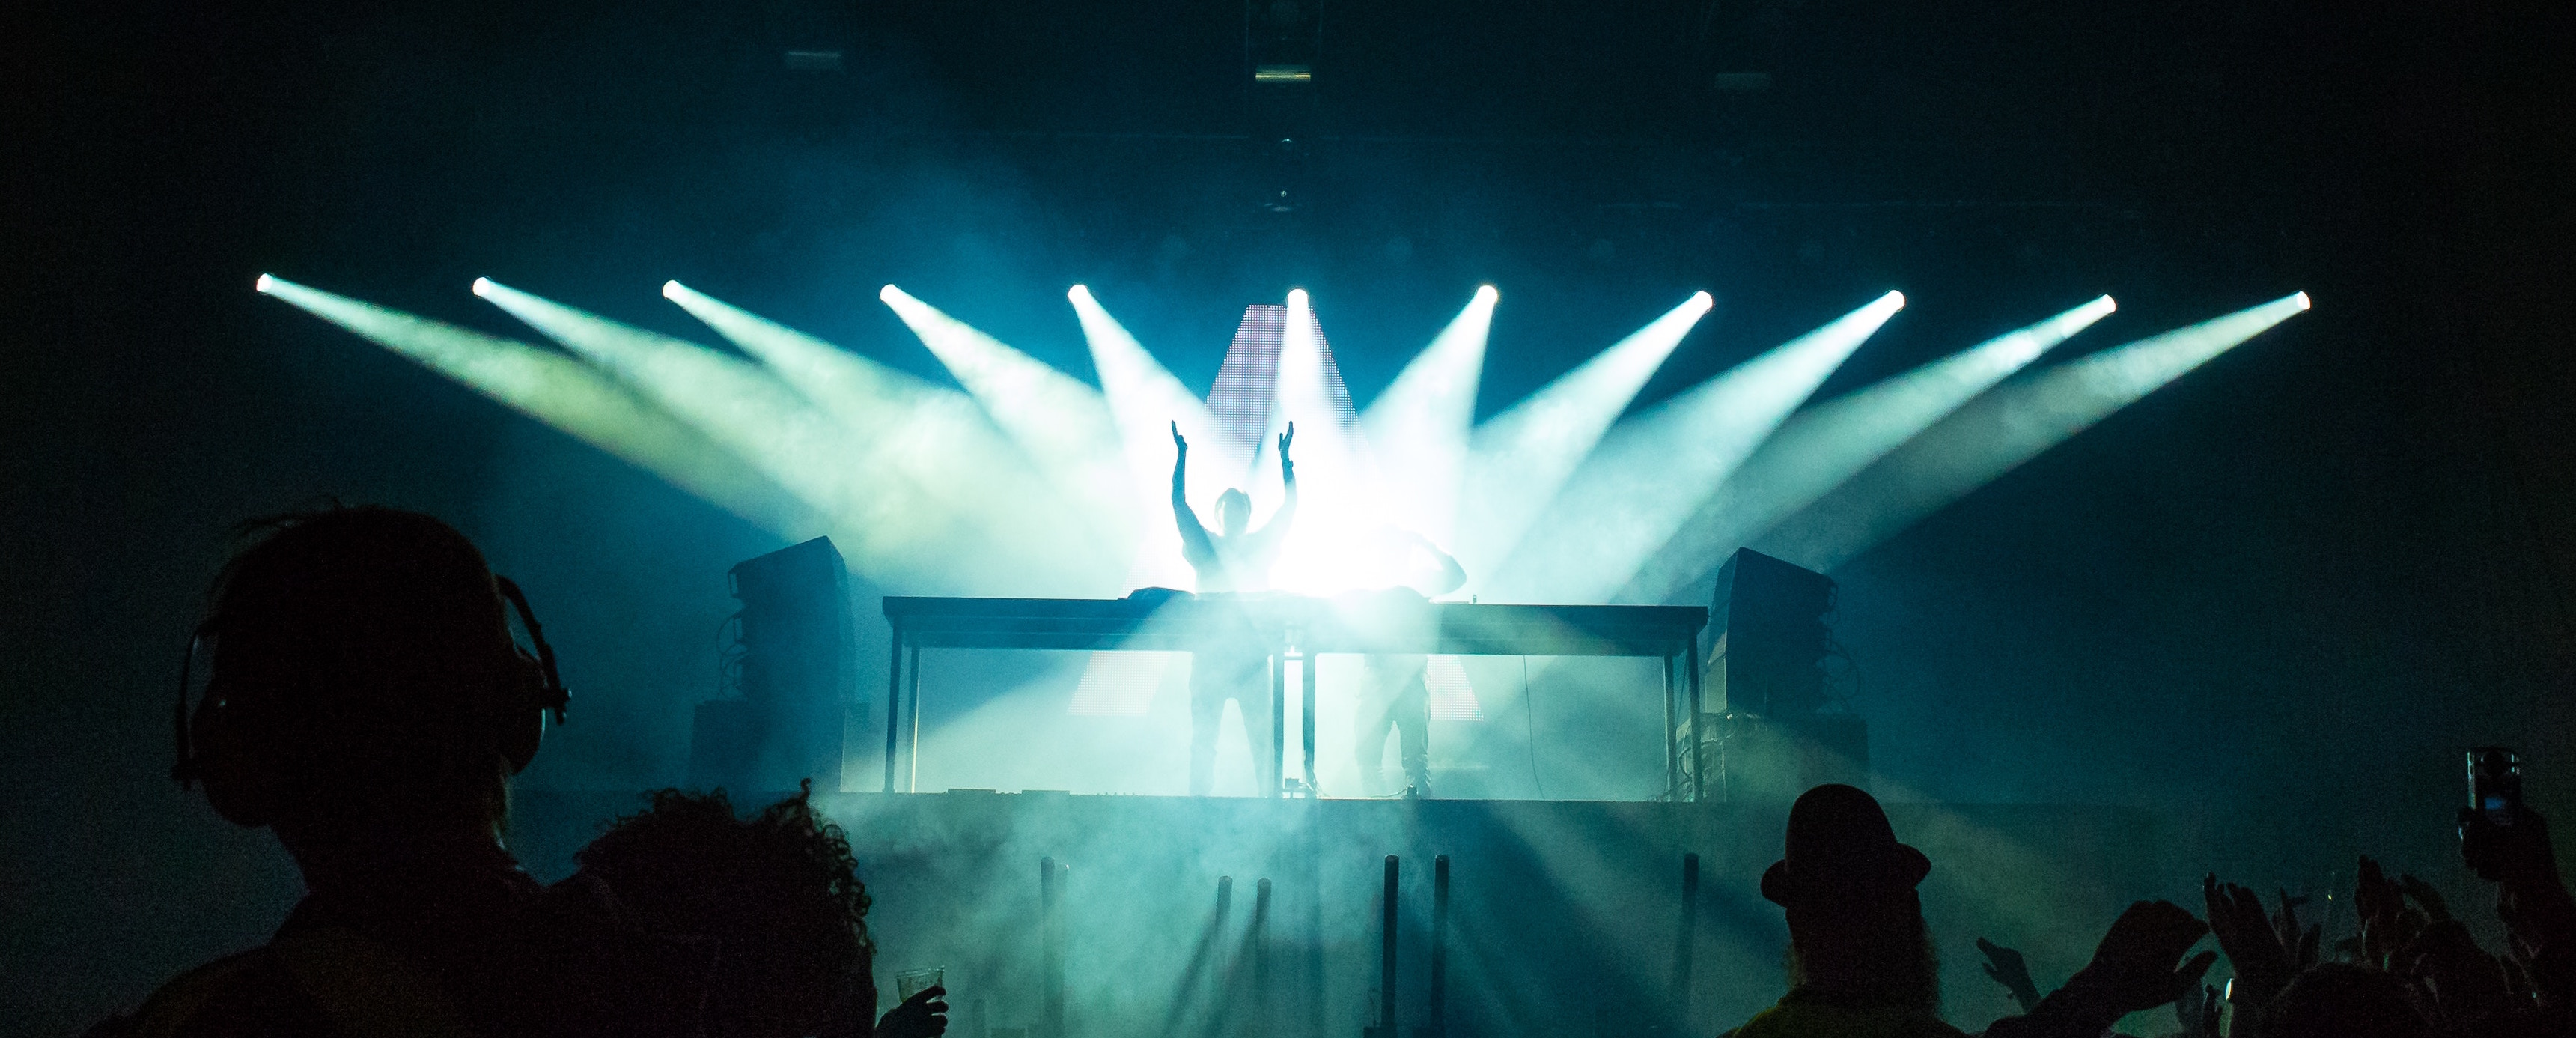 stage and bright lights